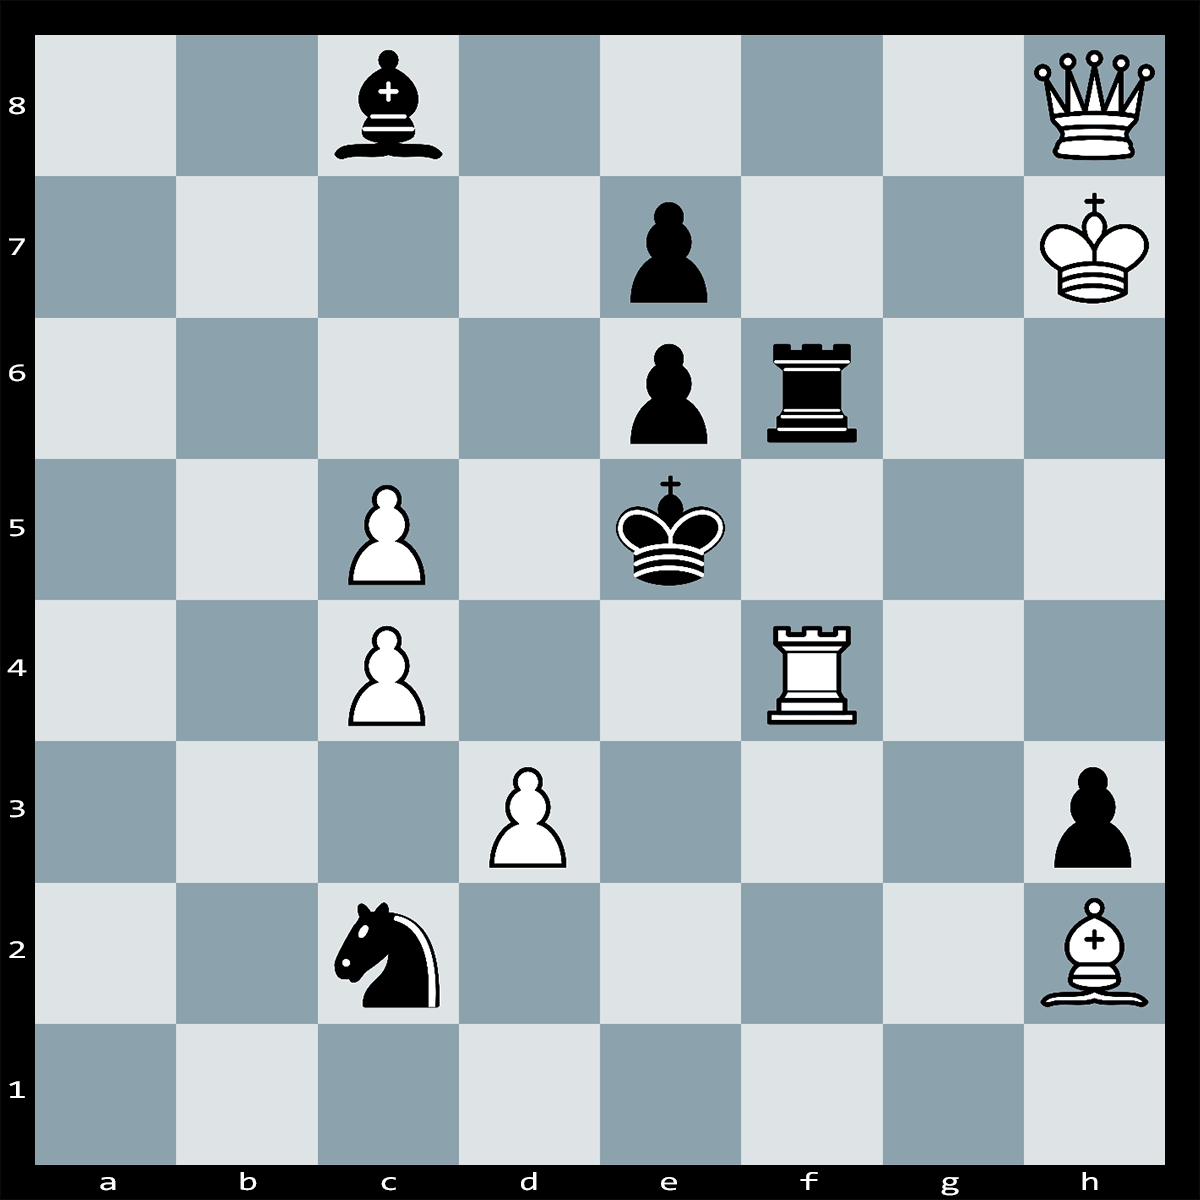 Find the Best Move, White to Play - Chess Puzzle #28